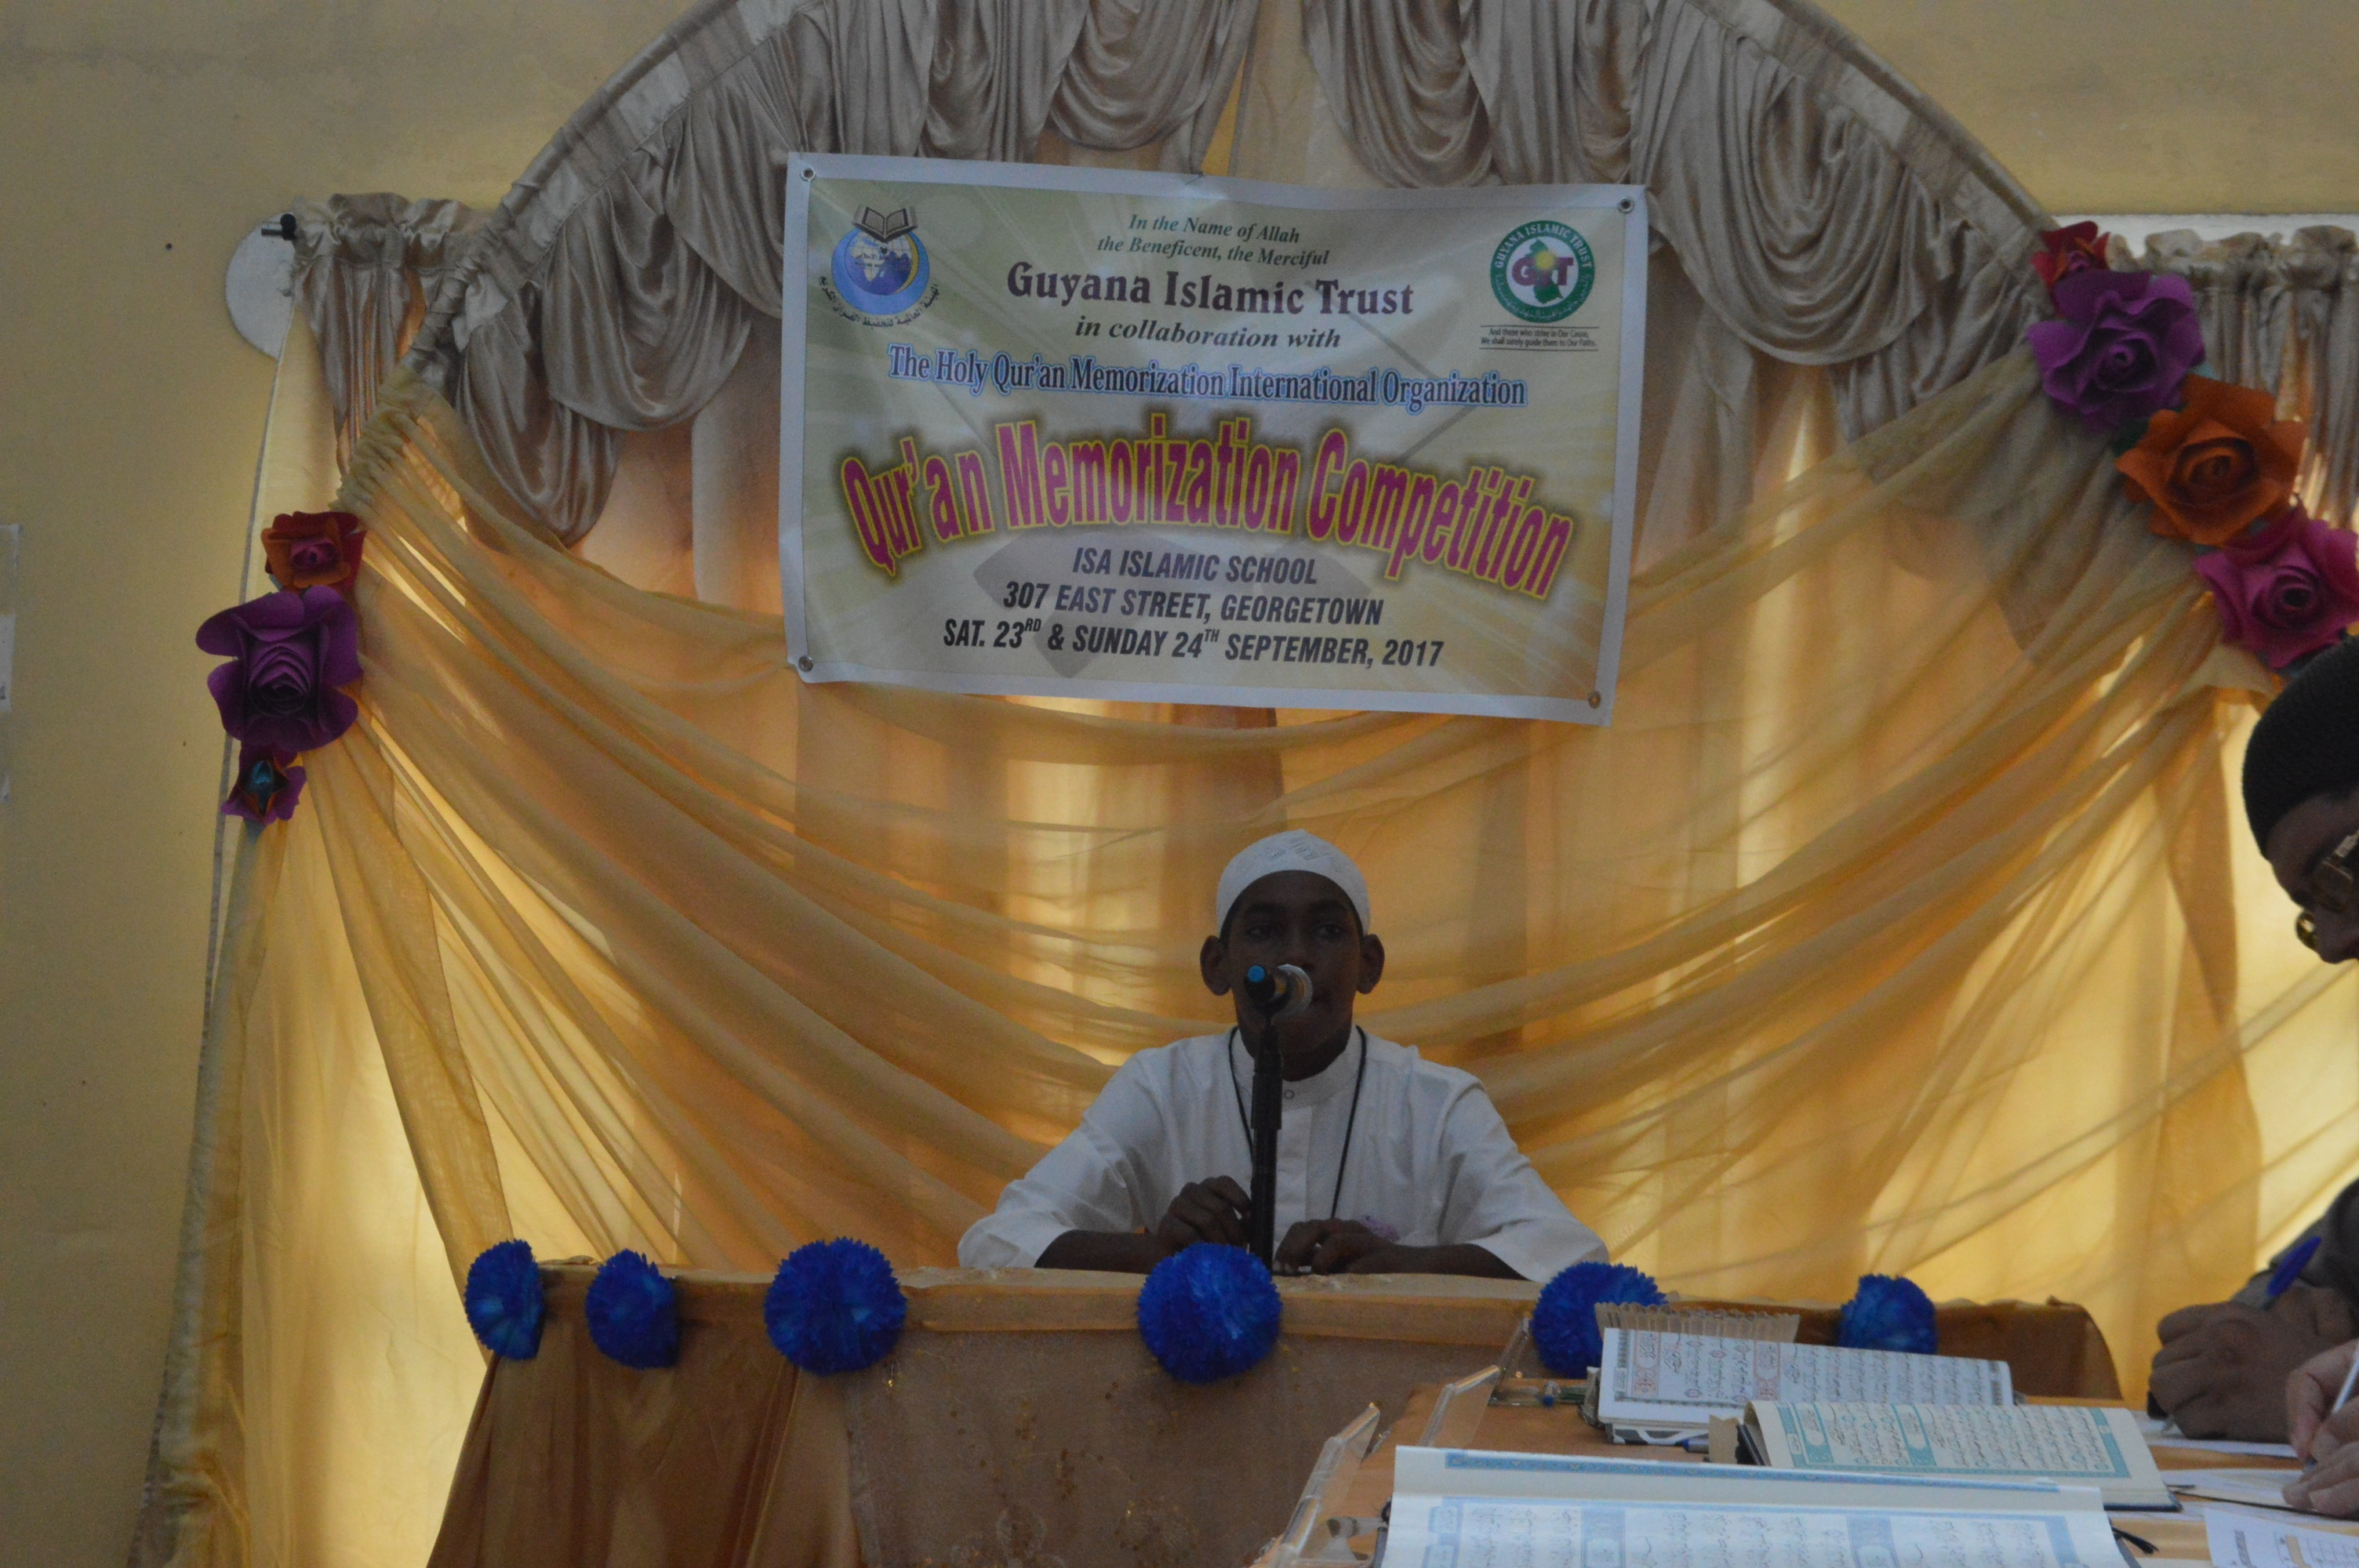 Participant at the Qur'an Memorization Competition